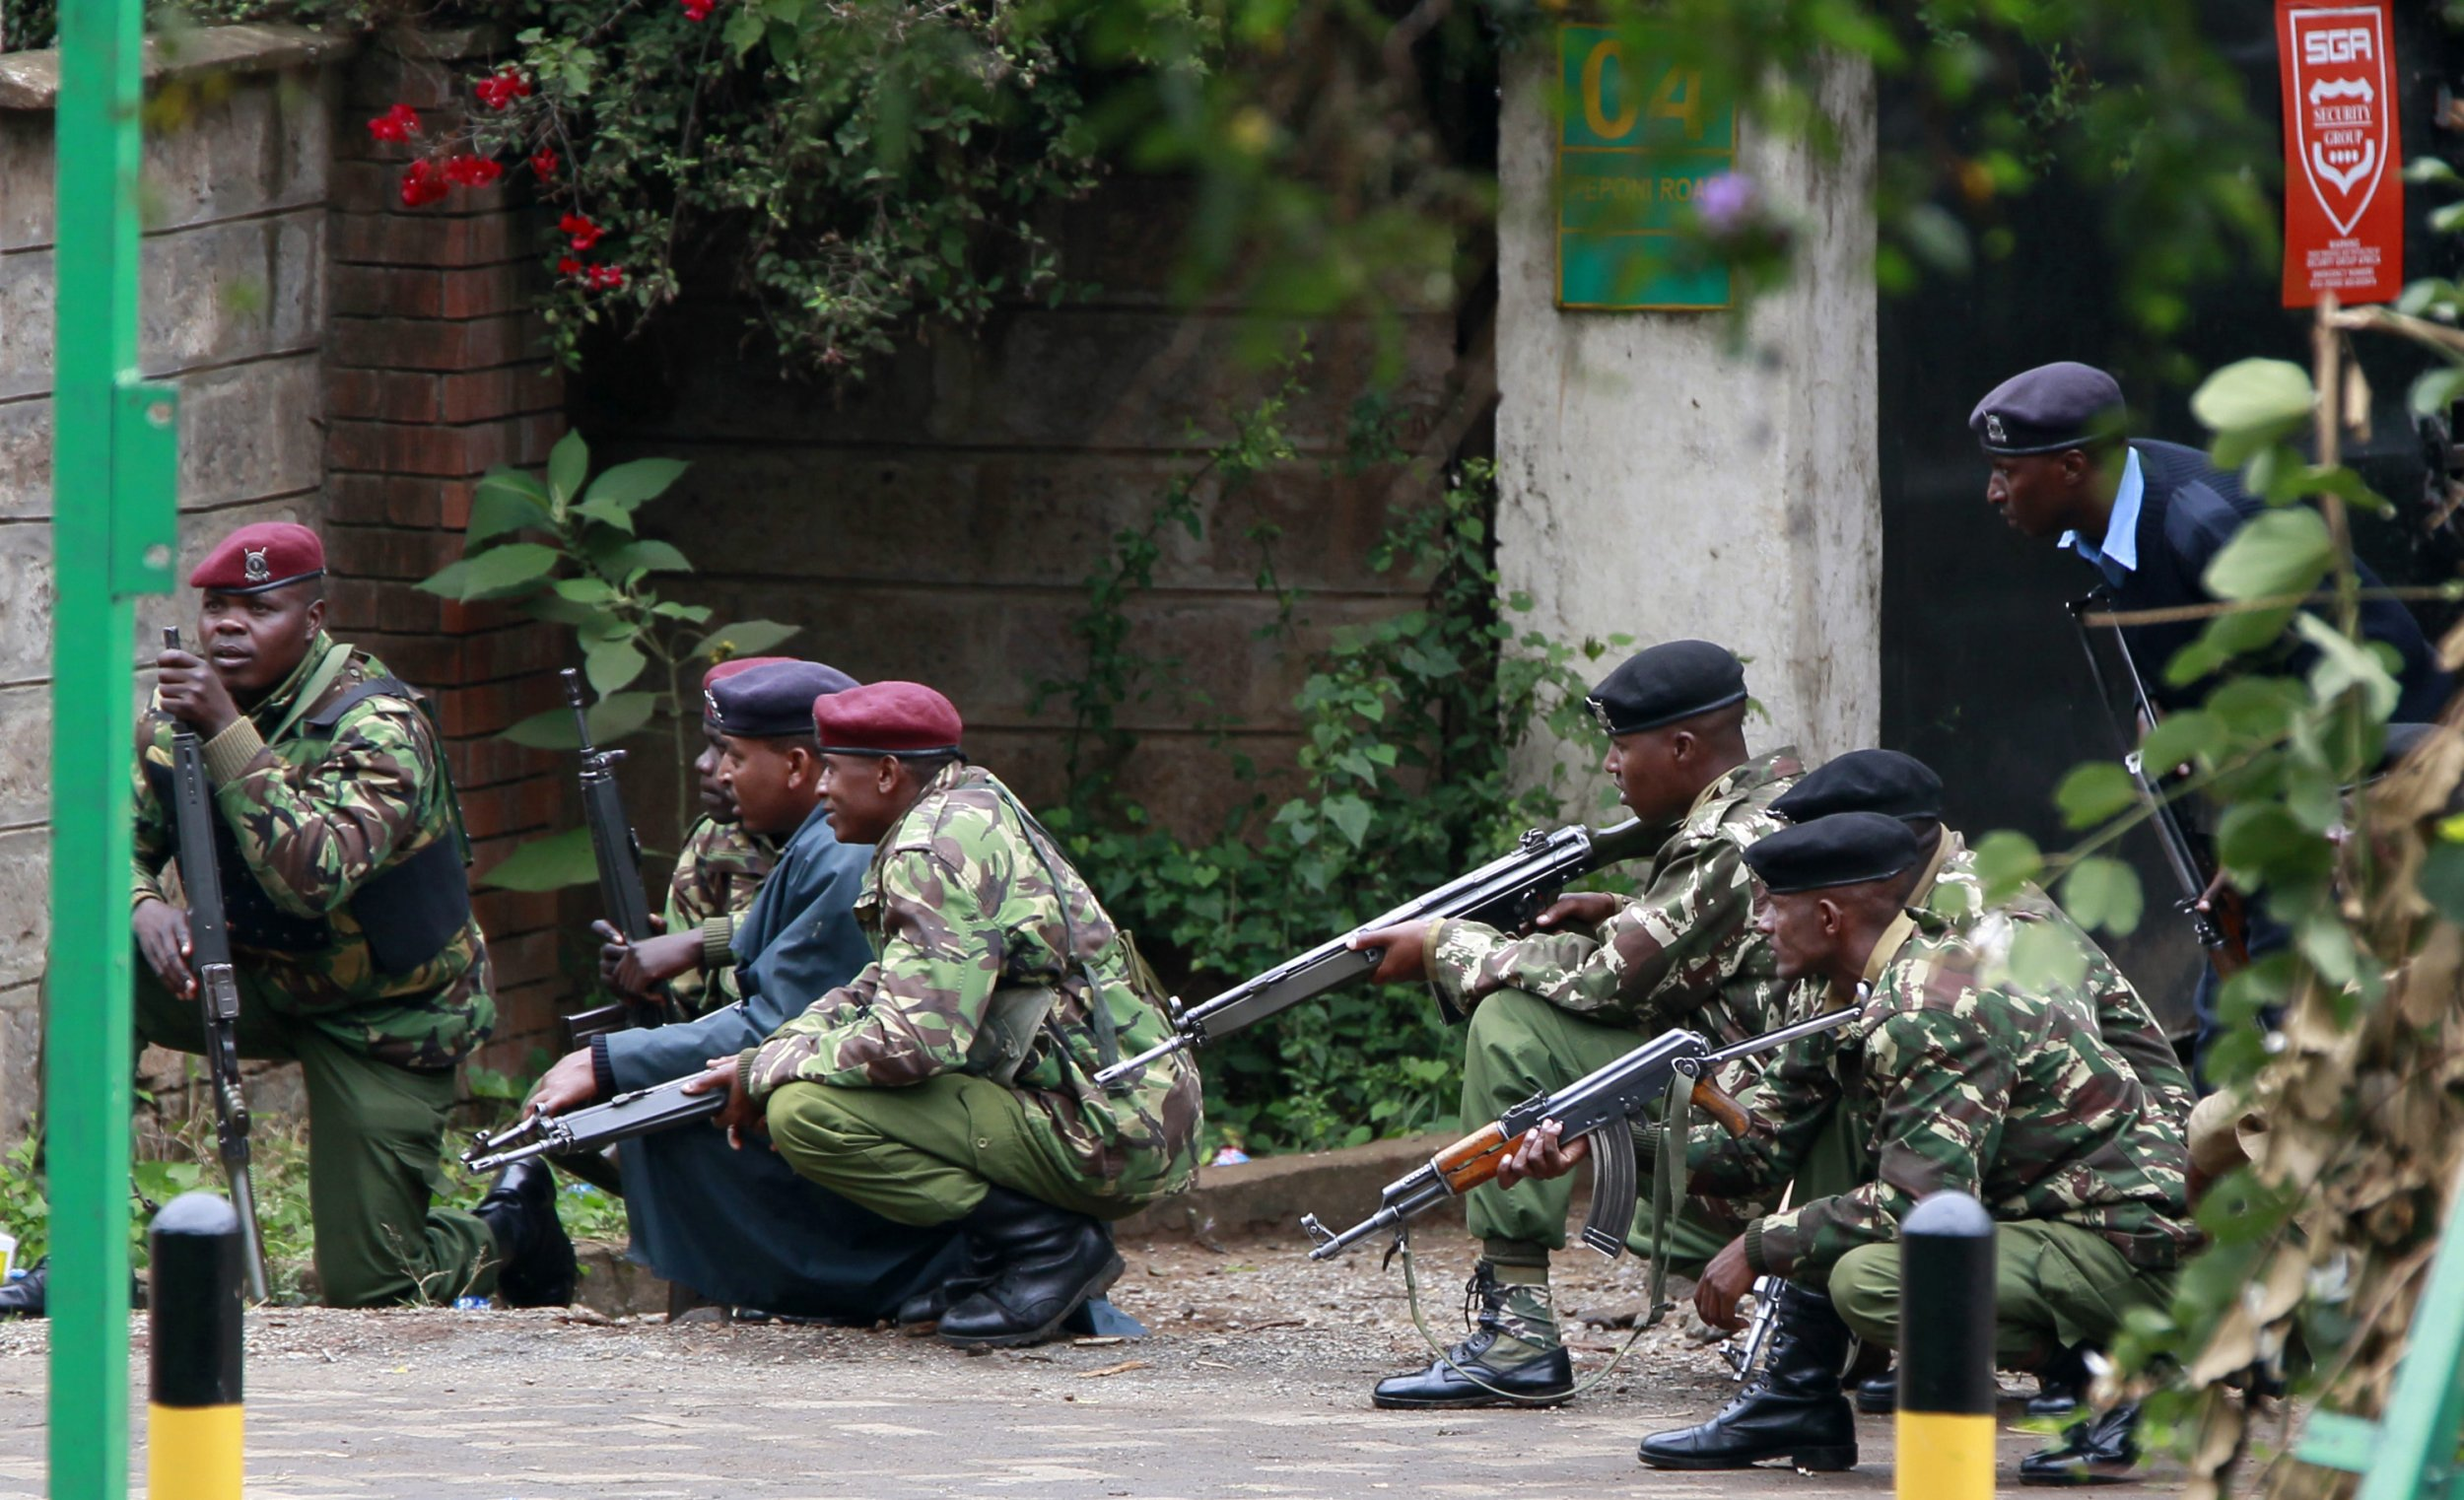 Kenya police during Westgate attack